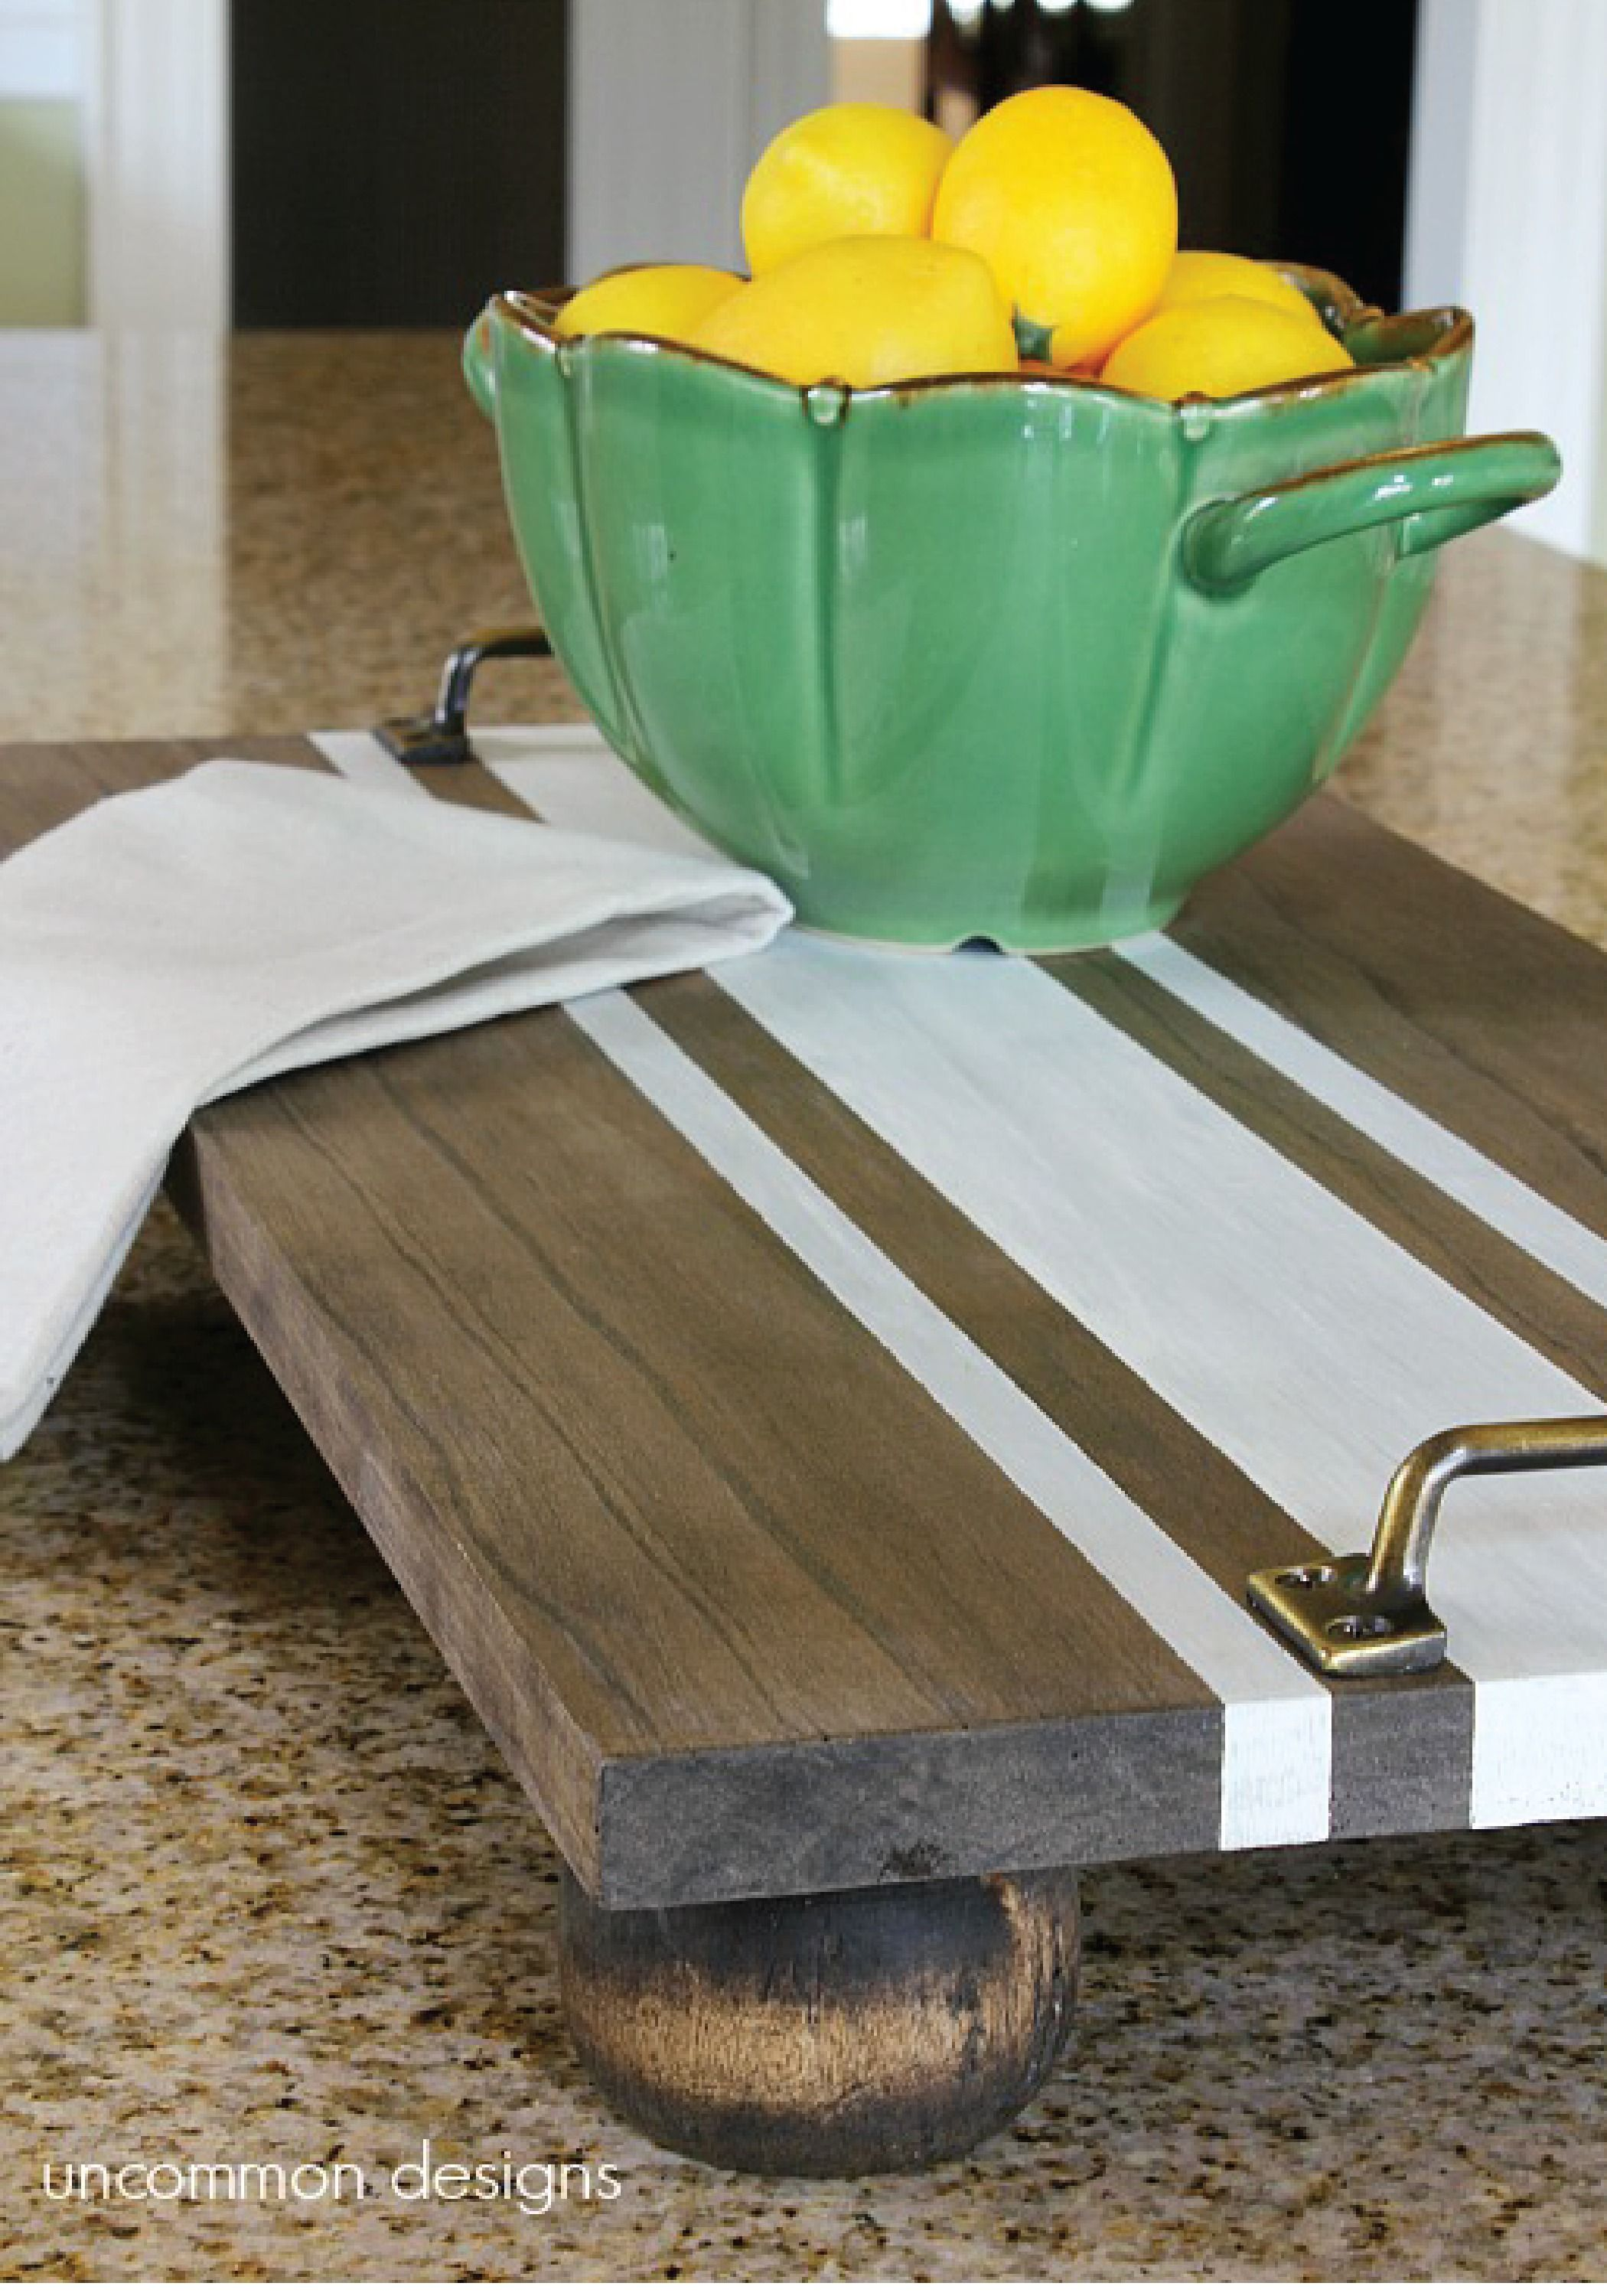 Rustic DIY striped serving tray adds a natural feel to any kitchen.